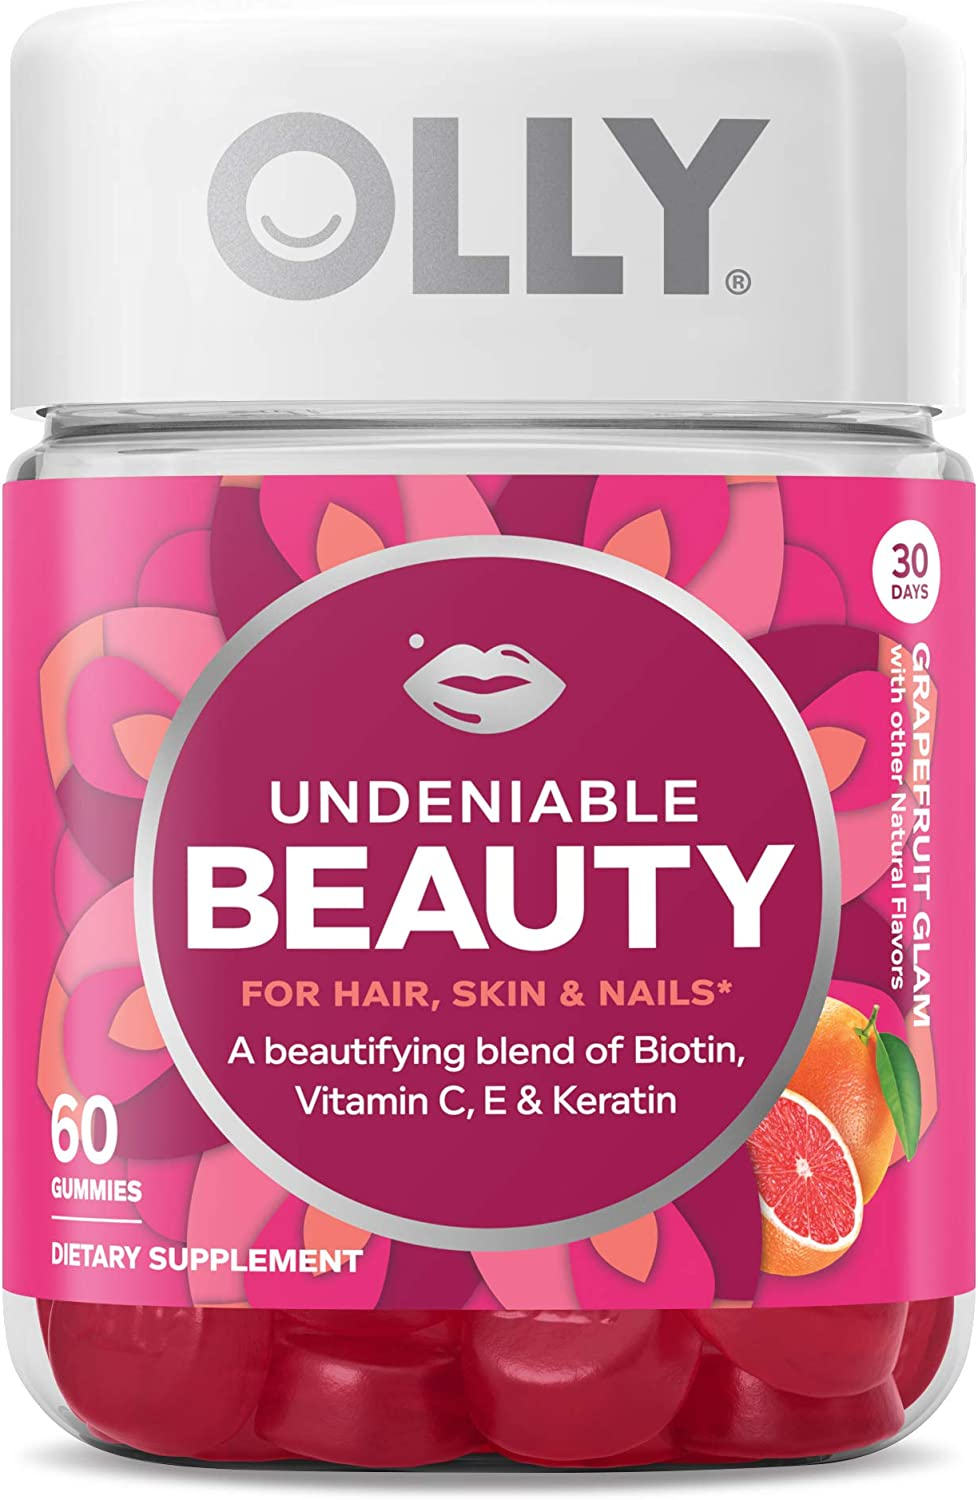 OLLY Undeniable Beauty Gummy, 30 Day Supply (60 Gummies)